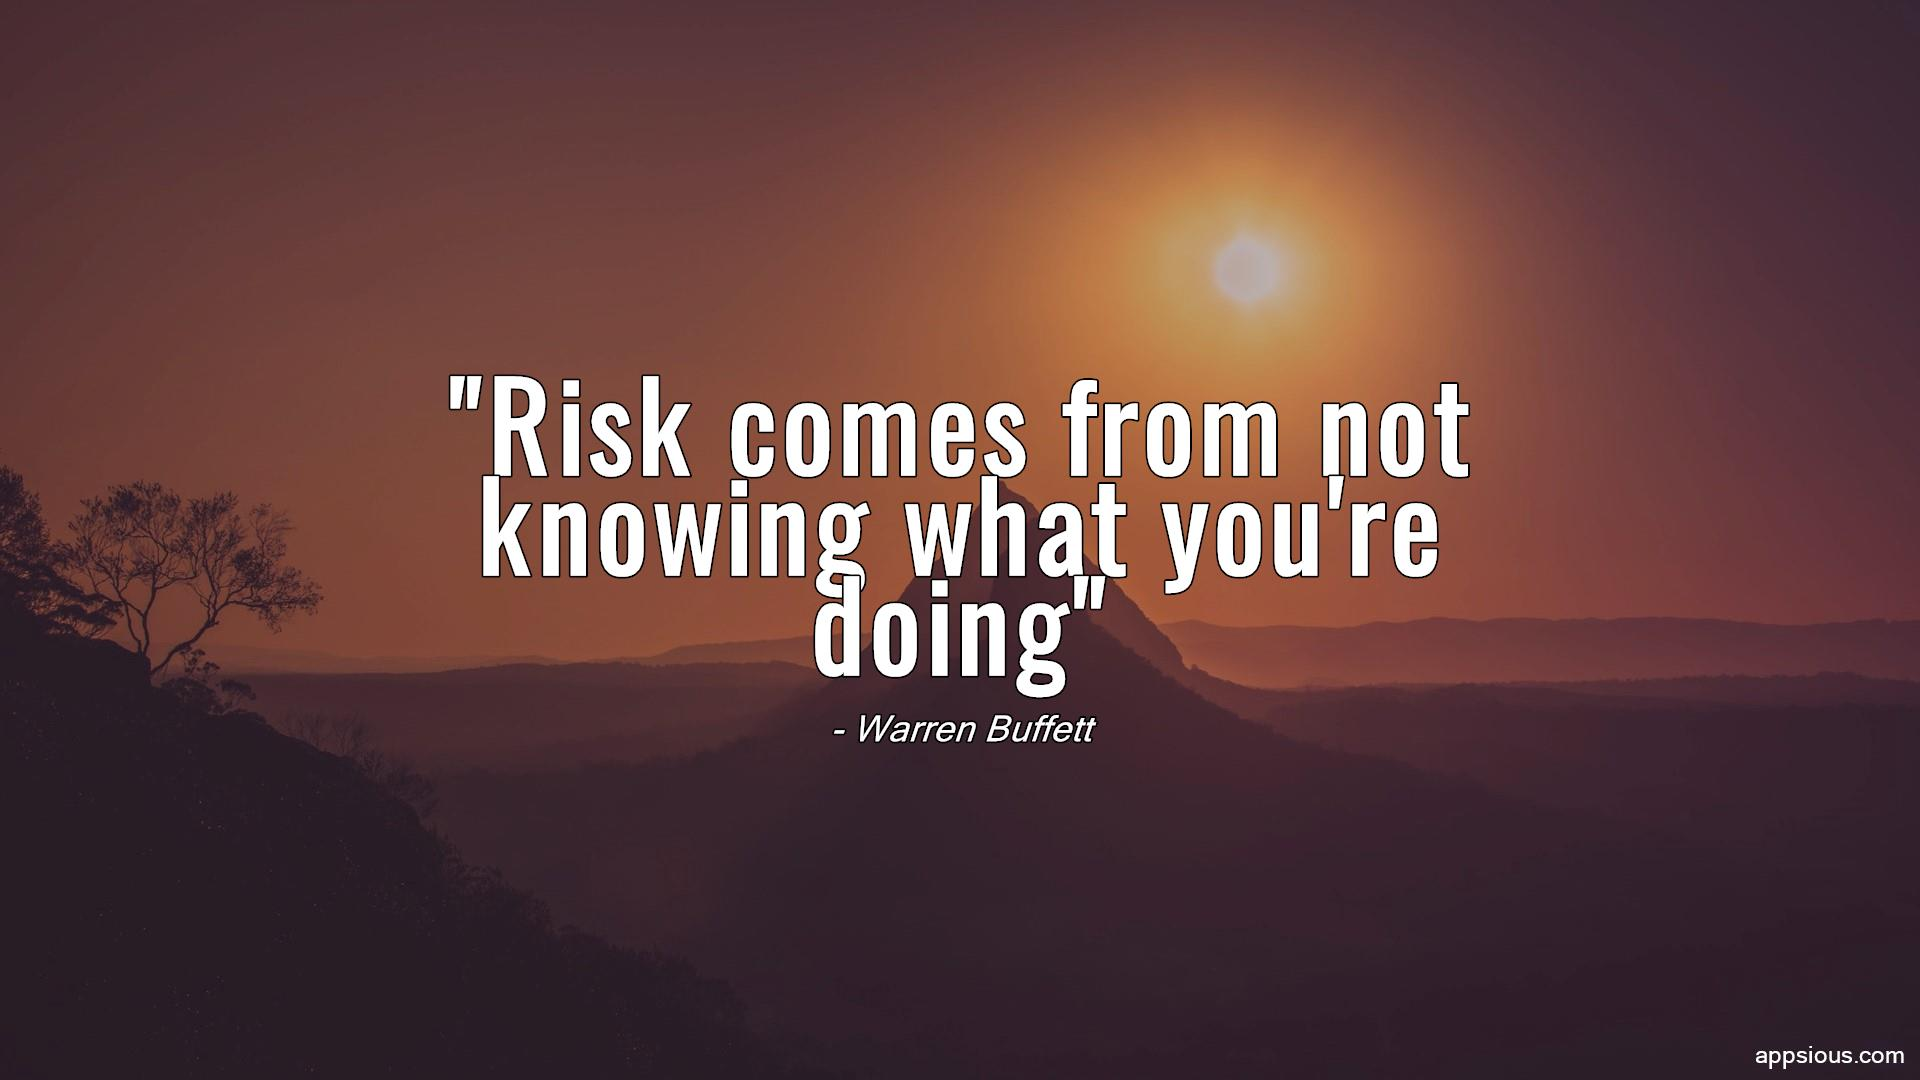 Risk comes from not knowing what you're doing